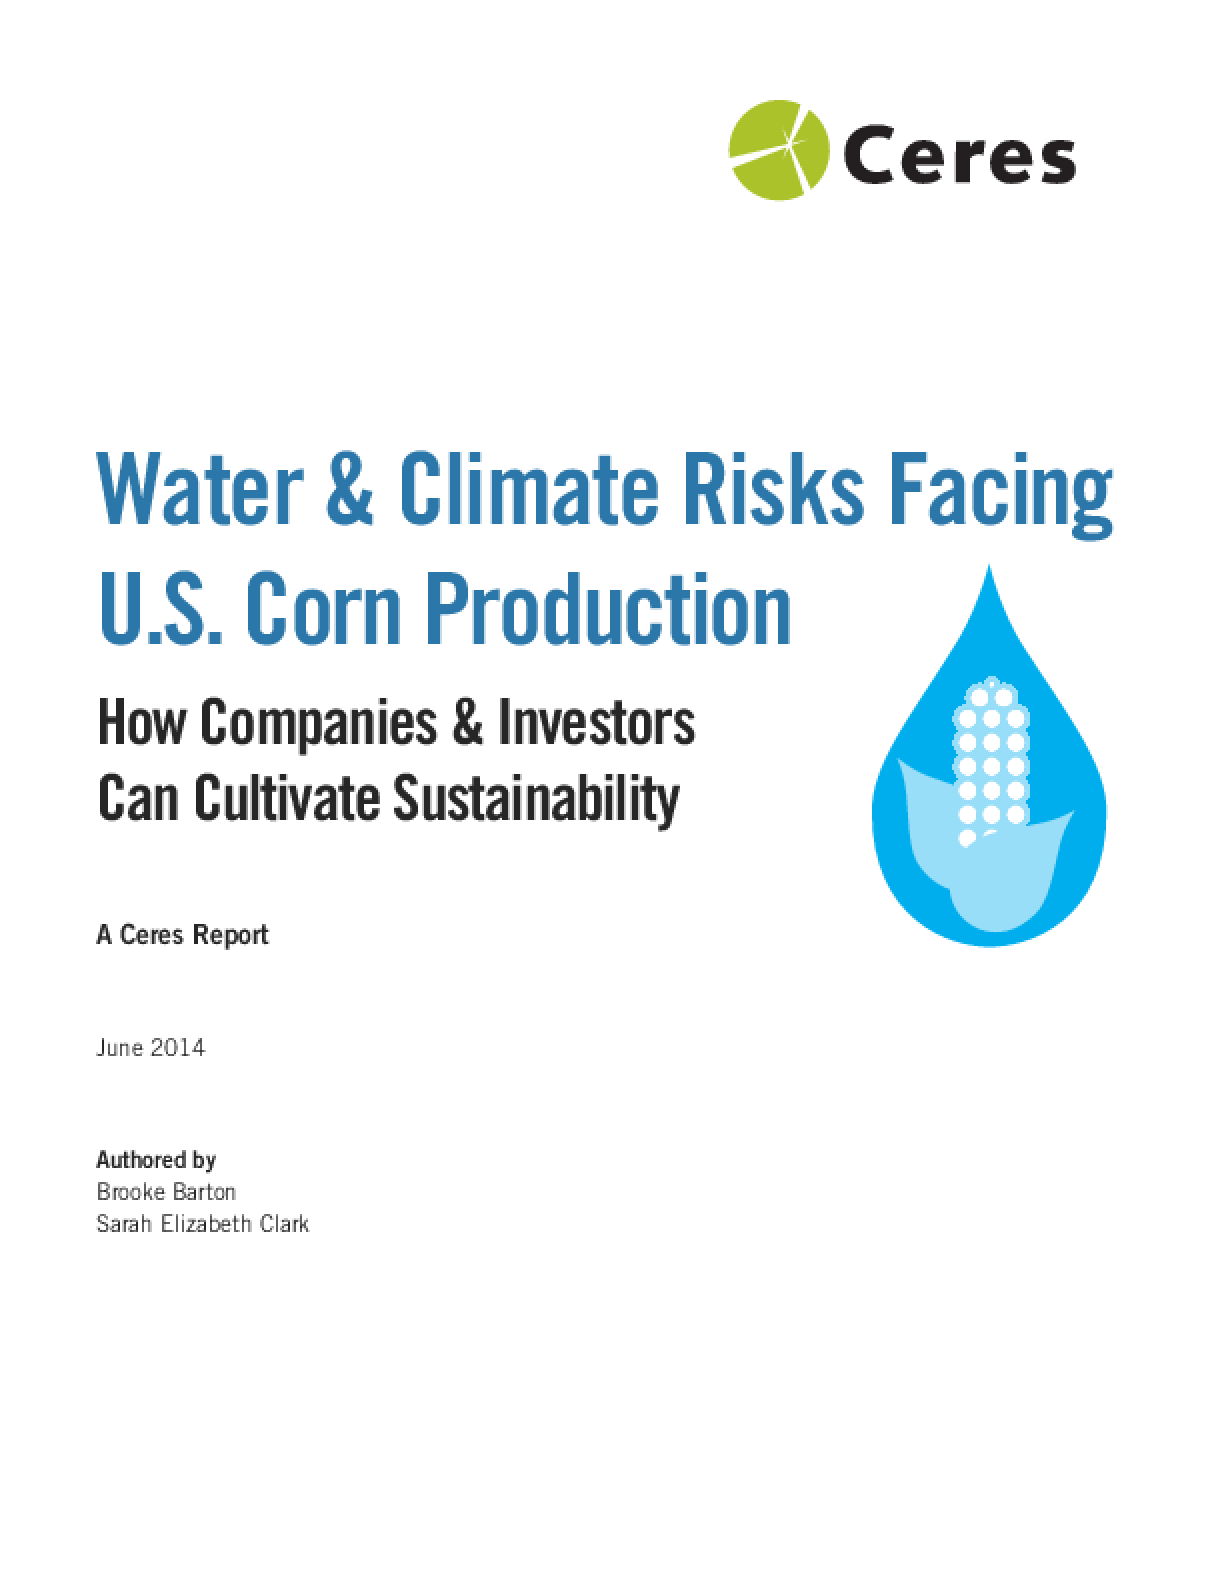 Water and Climate Risks Facing U.S. Corn Production: How Companies and Investors Can Cultivate Sustainability